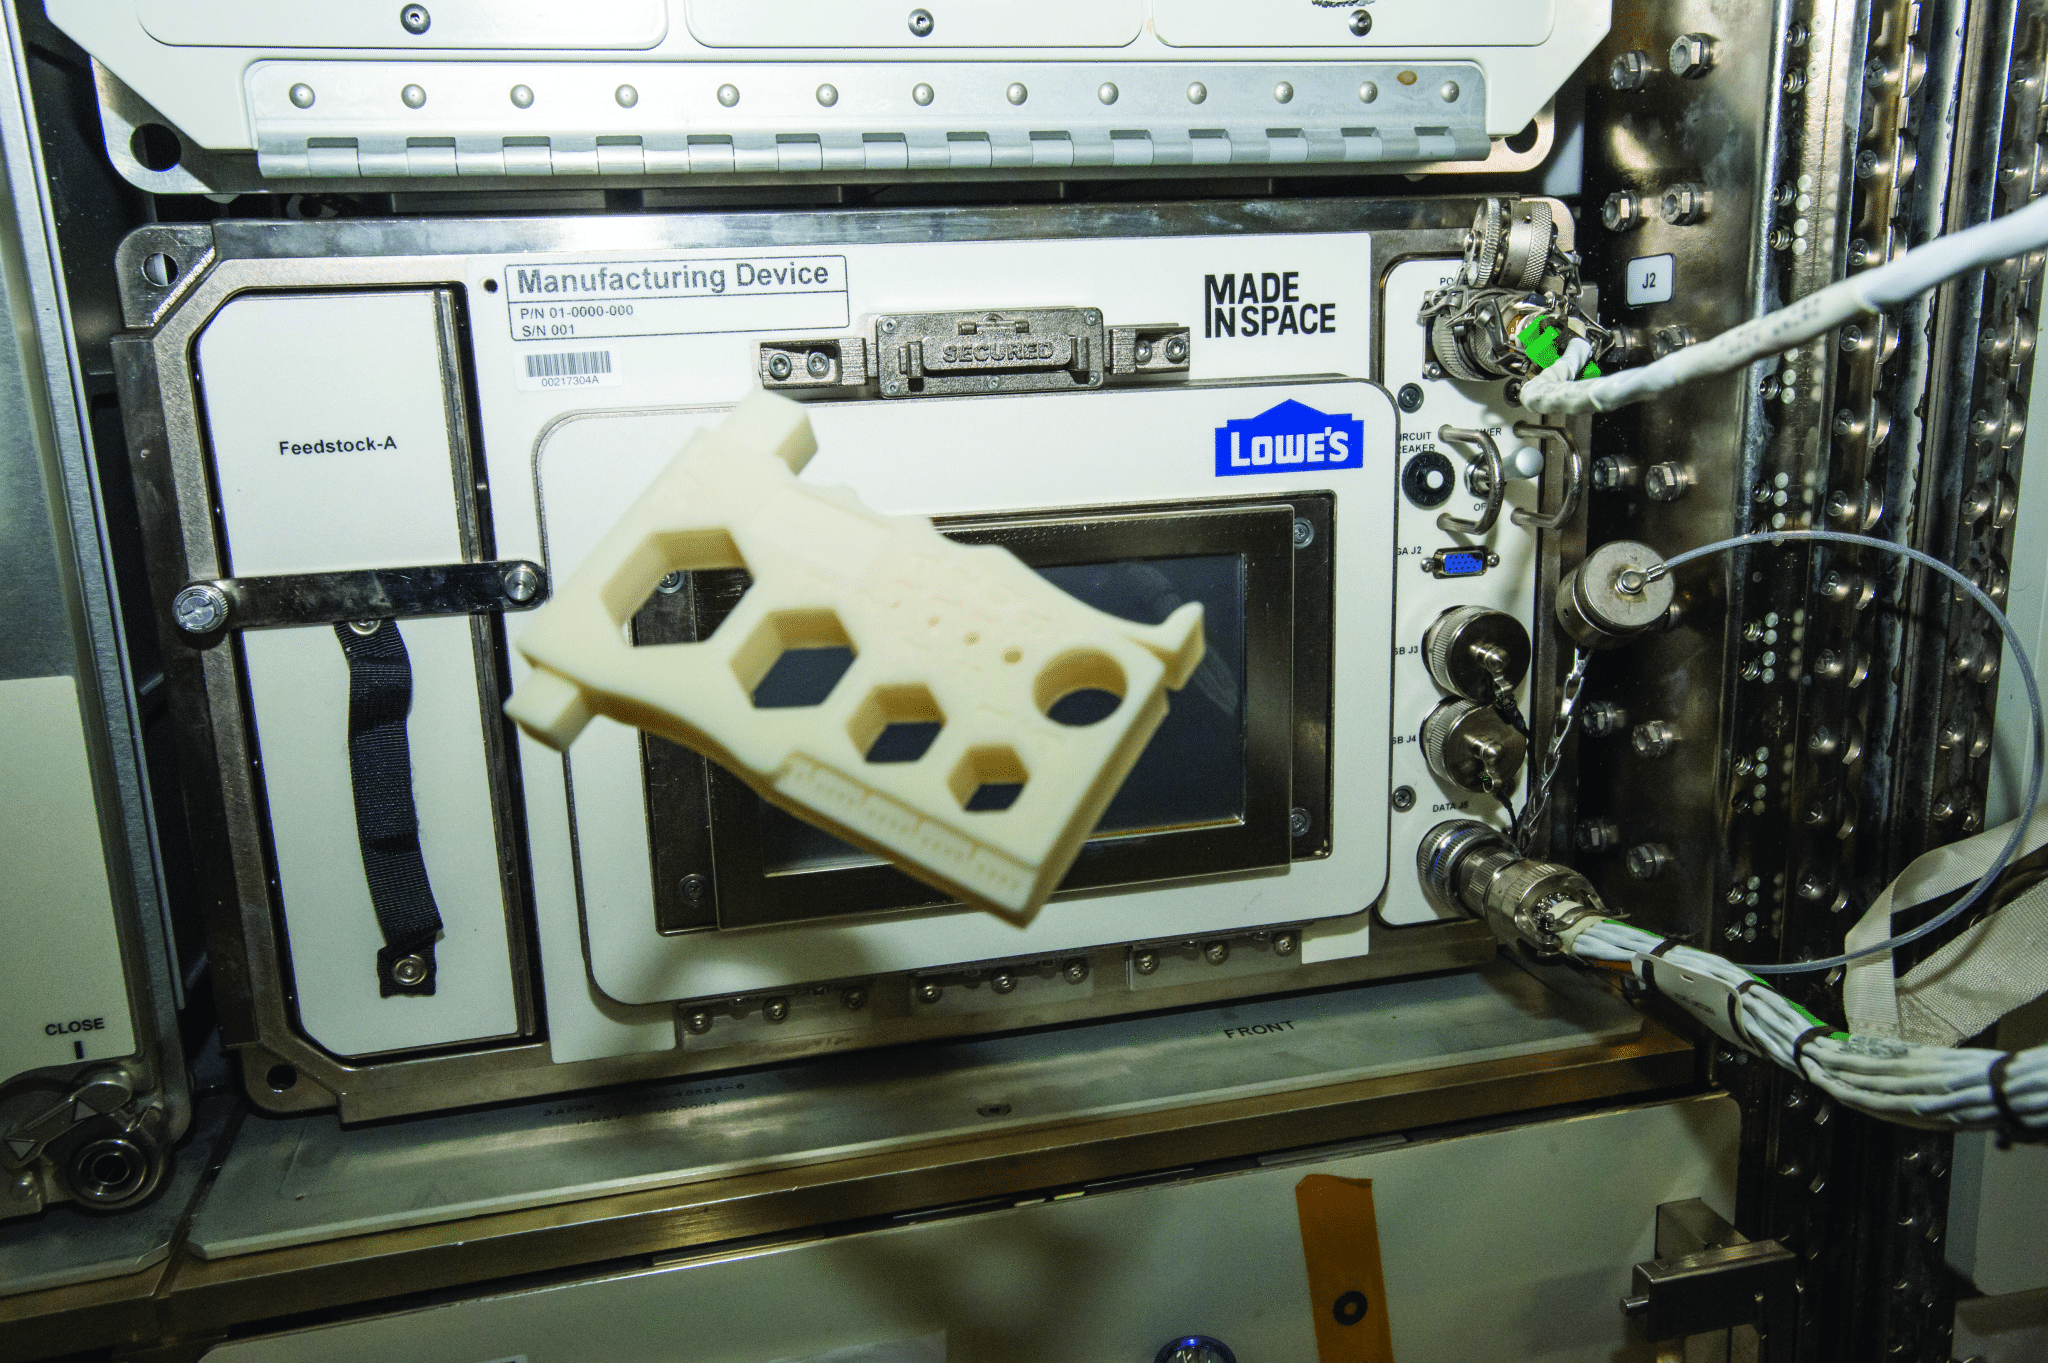 Made In Space Jacksonville, Florida HQ